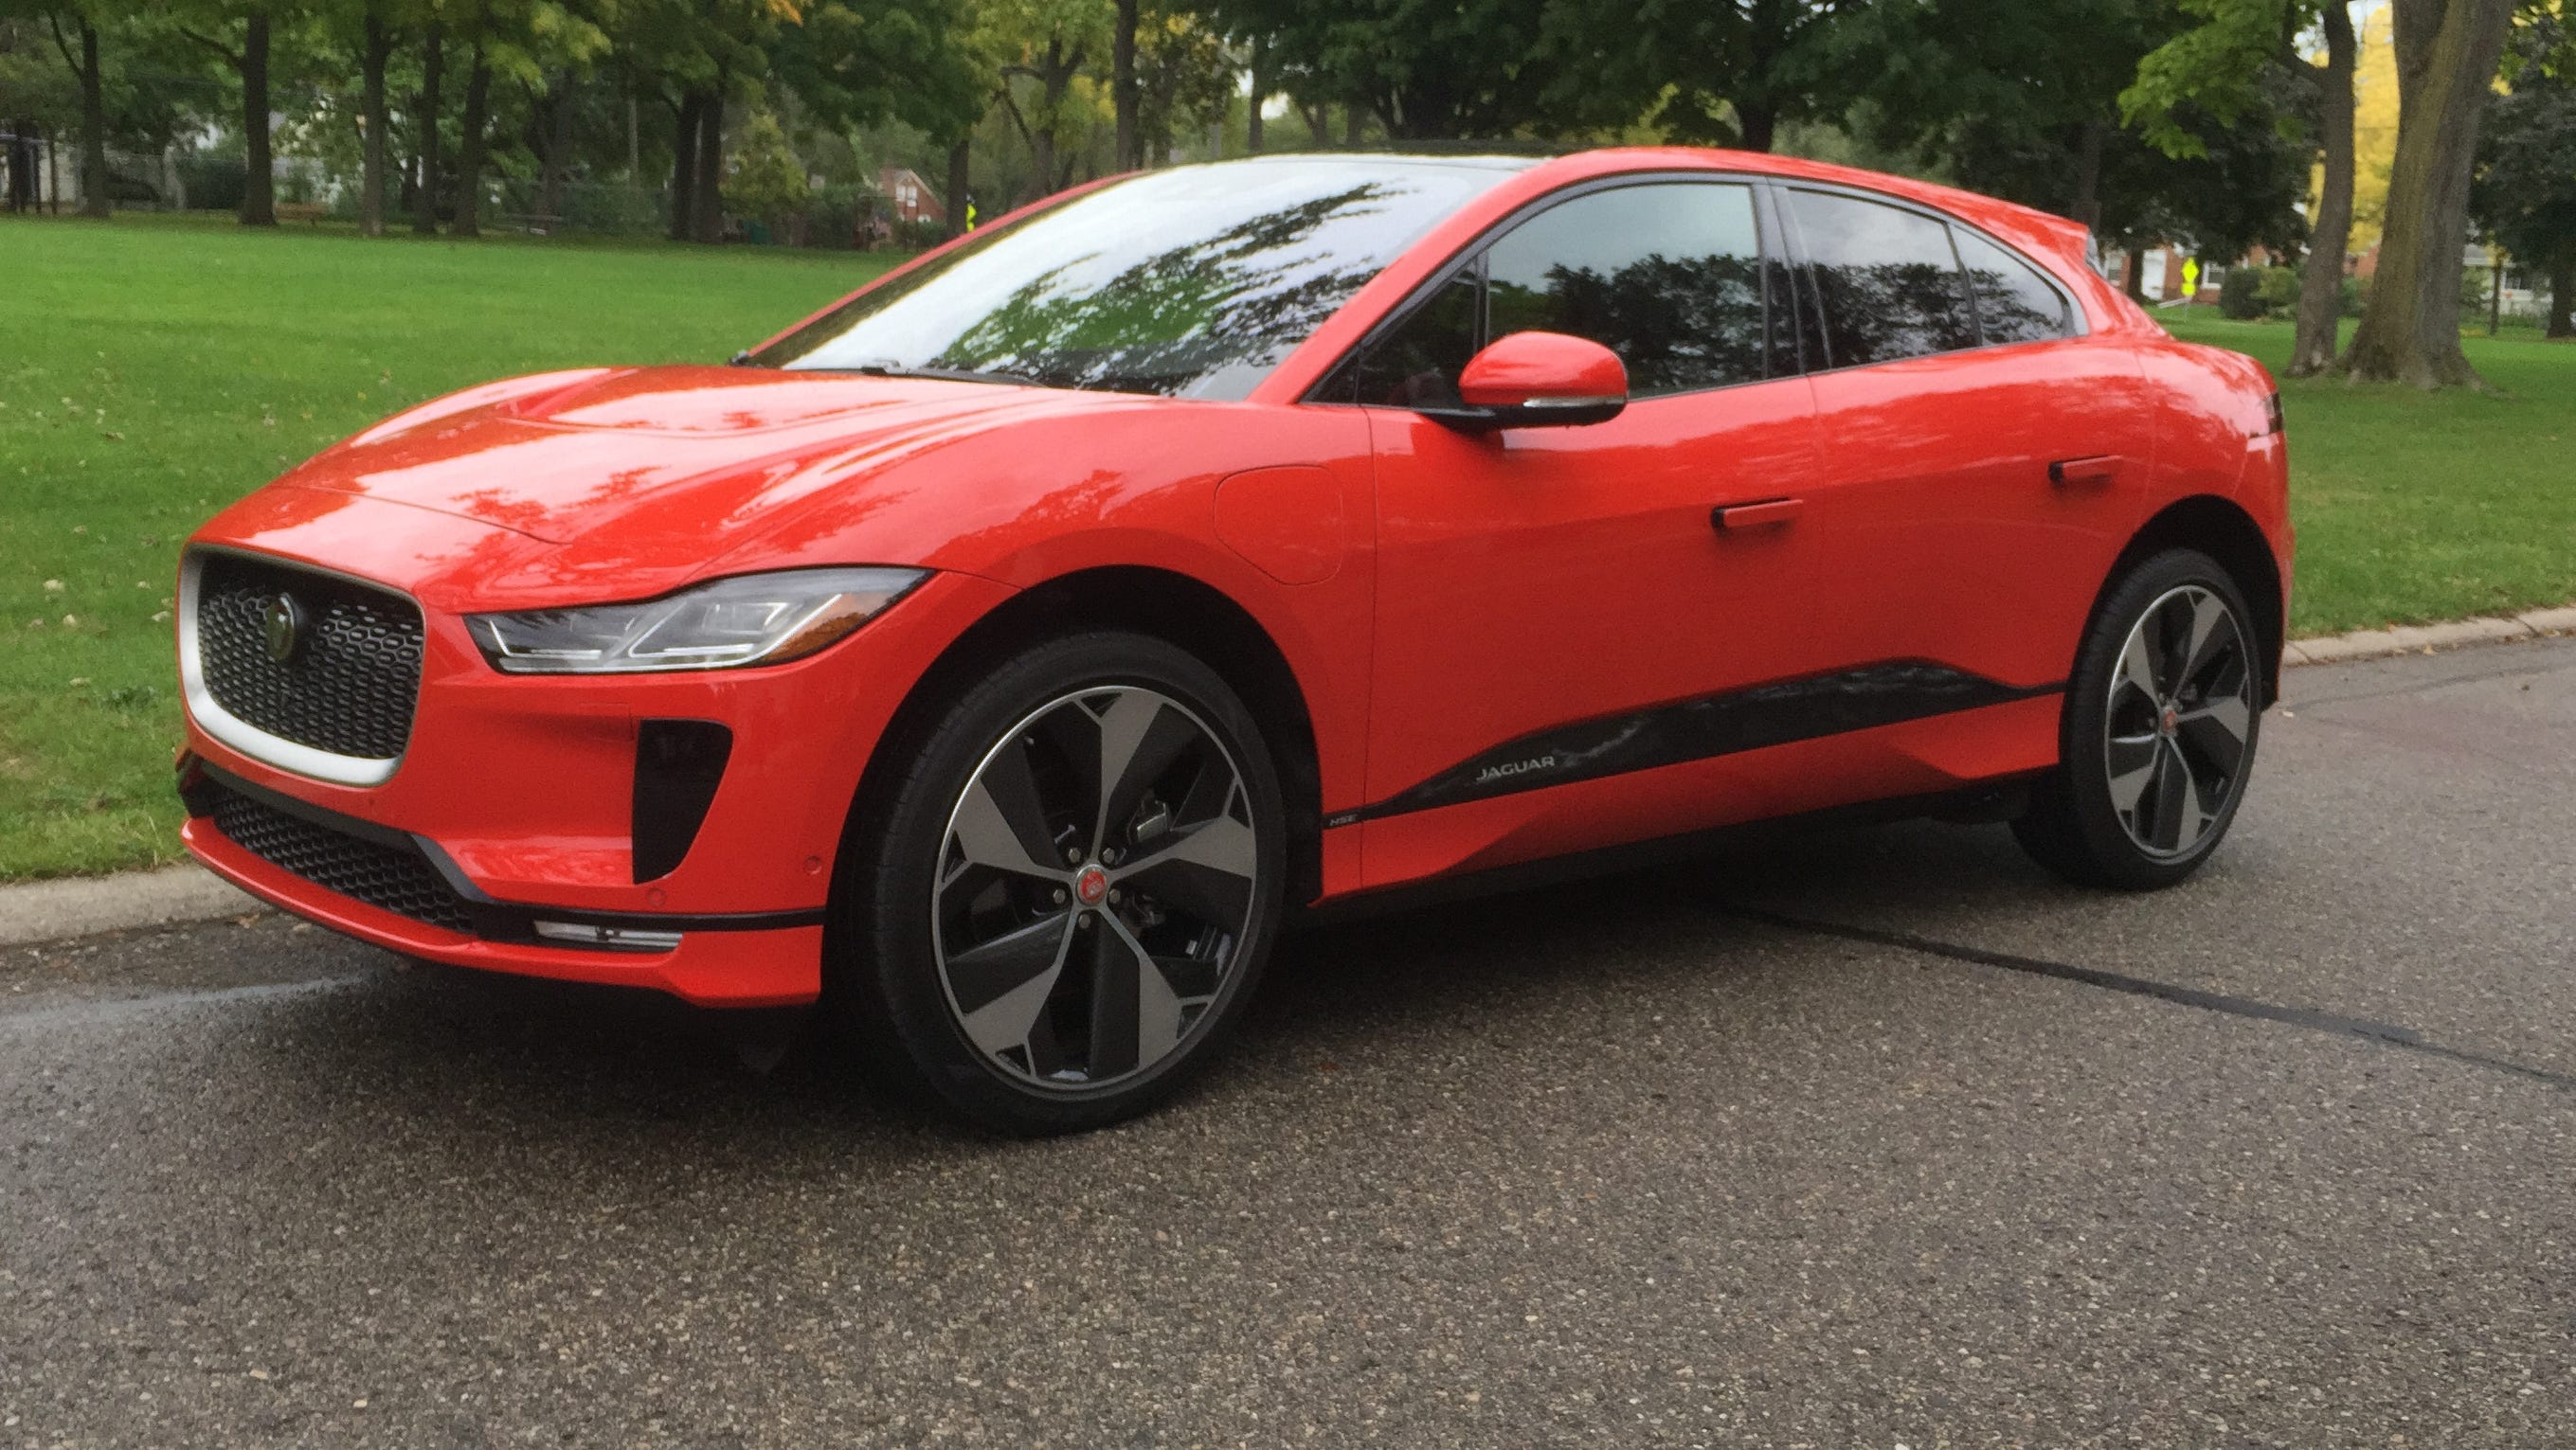 The 2018 Jaguar I-Pace electric SUV has a low roofline and sleek looks.